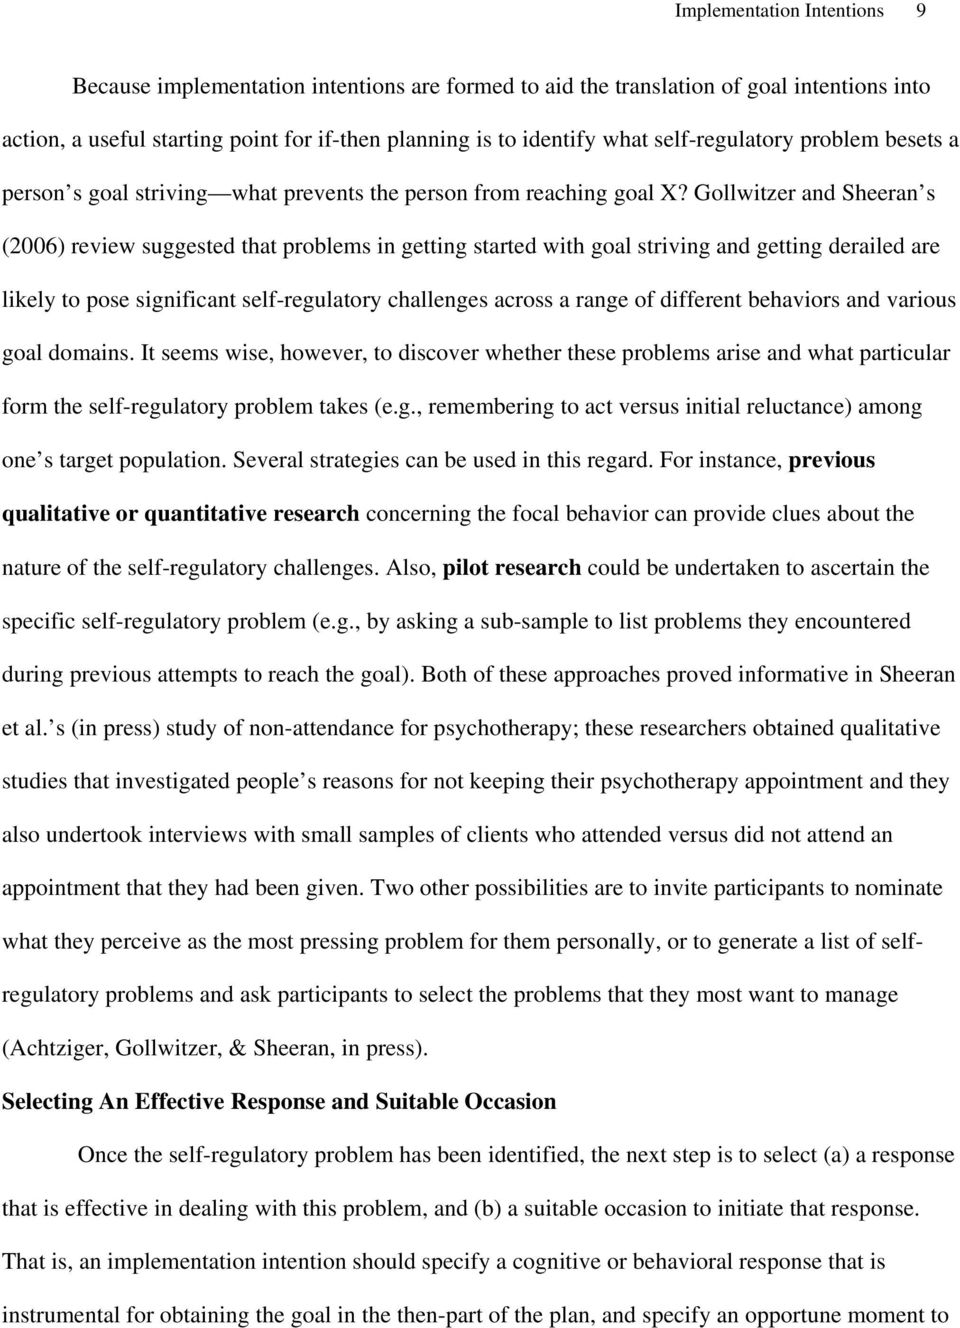 Gollwitzer and Sheeran s (2006) review suggested that problems in getting started with goal striving and getting derailed are likely to pose significant self-regulatory challenges across a range of